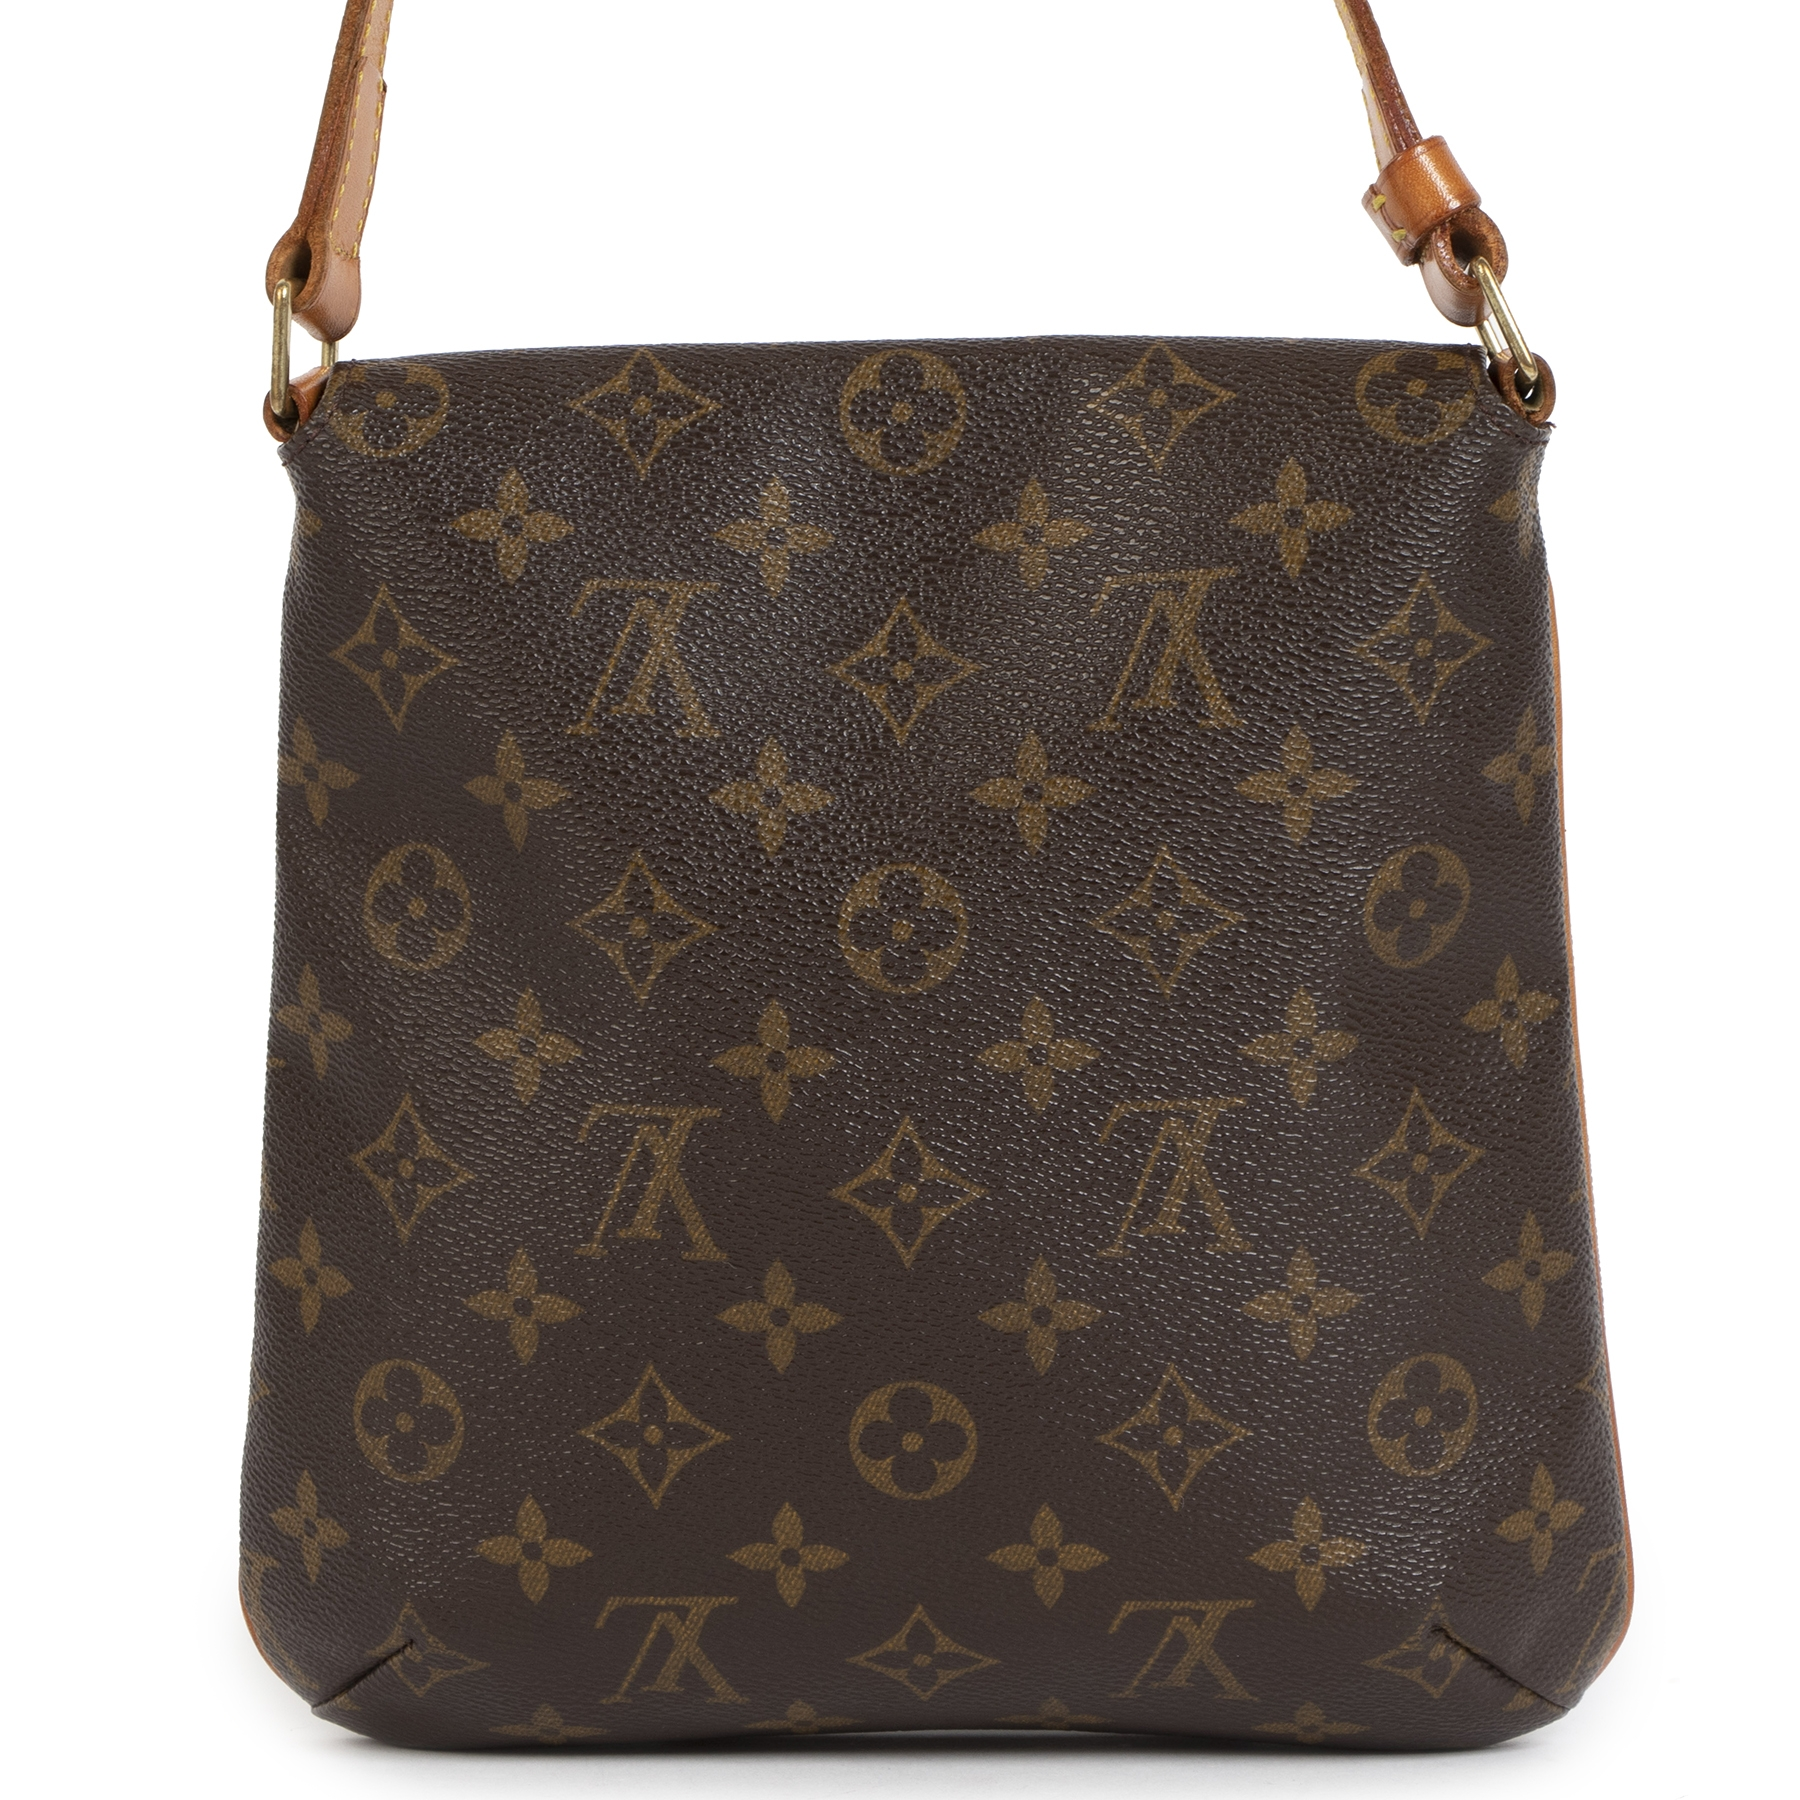 Are you looking for an authentic Louis Vuitton Monogram Musette Salsa PM?